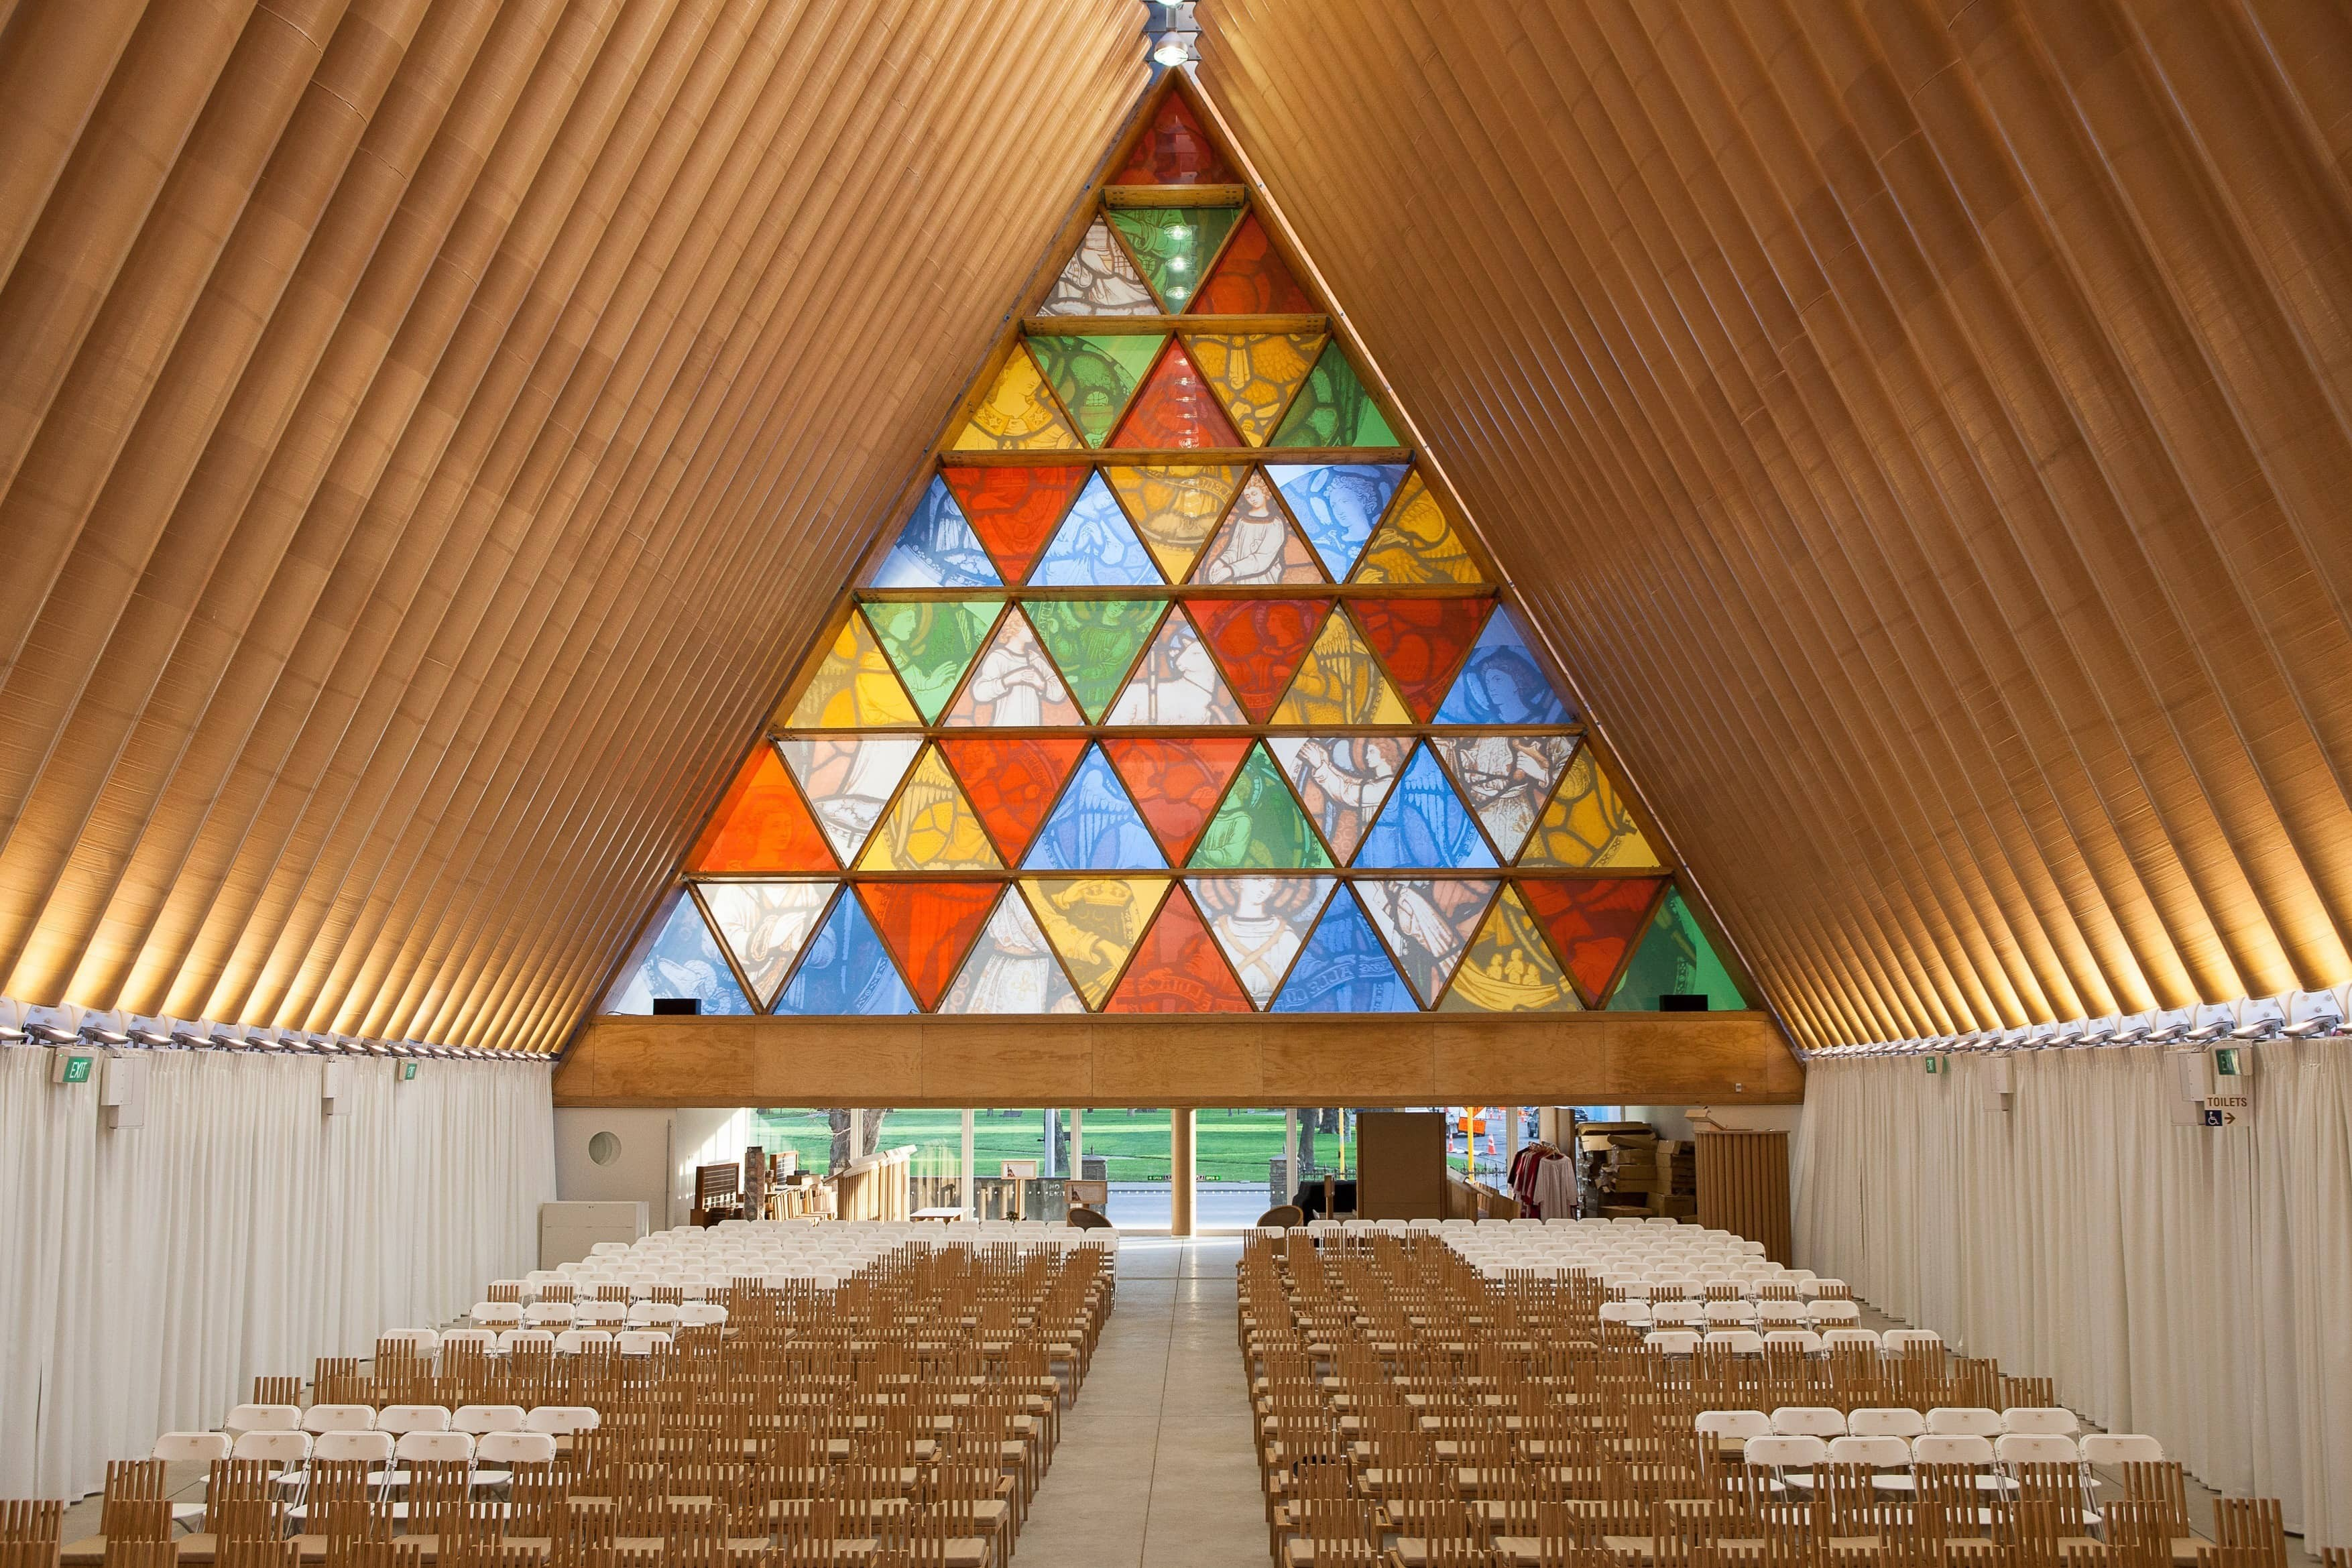 Christchurch Venue - Transitional/Cardboard Cathedral